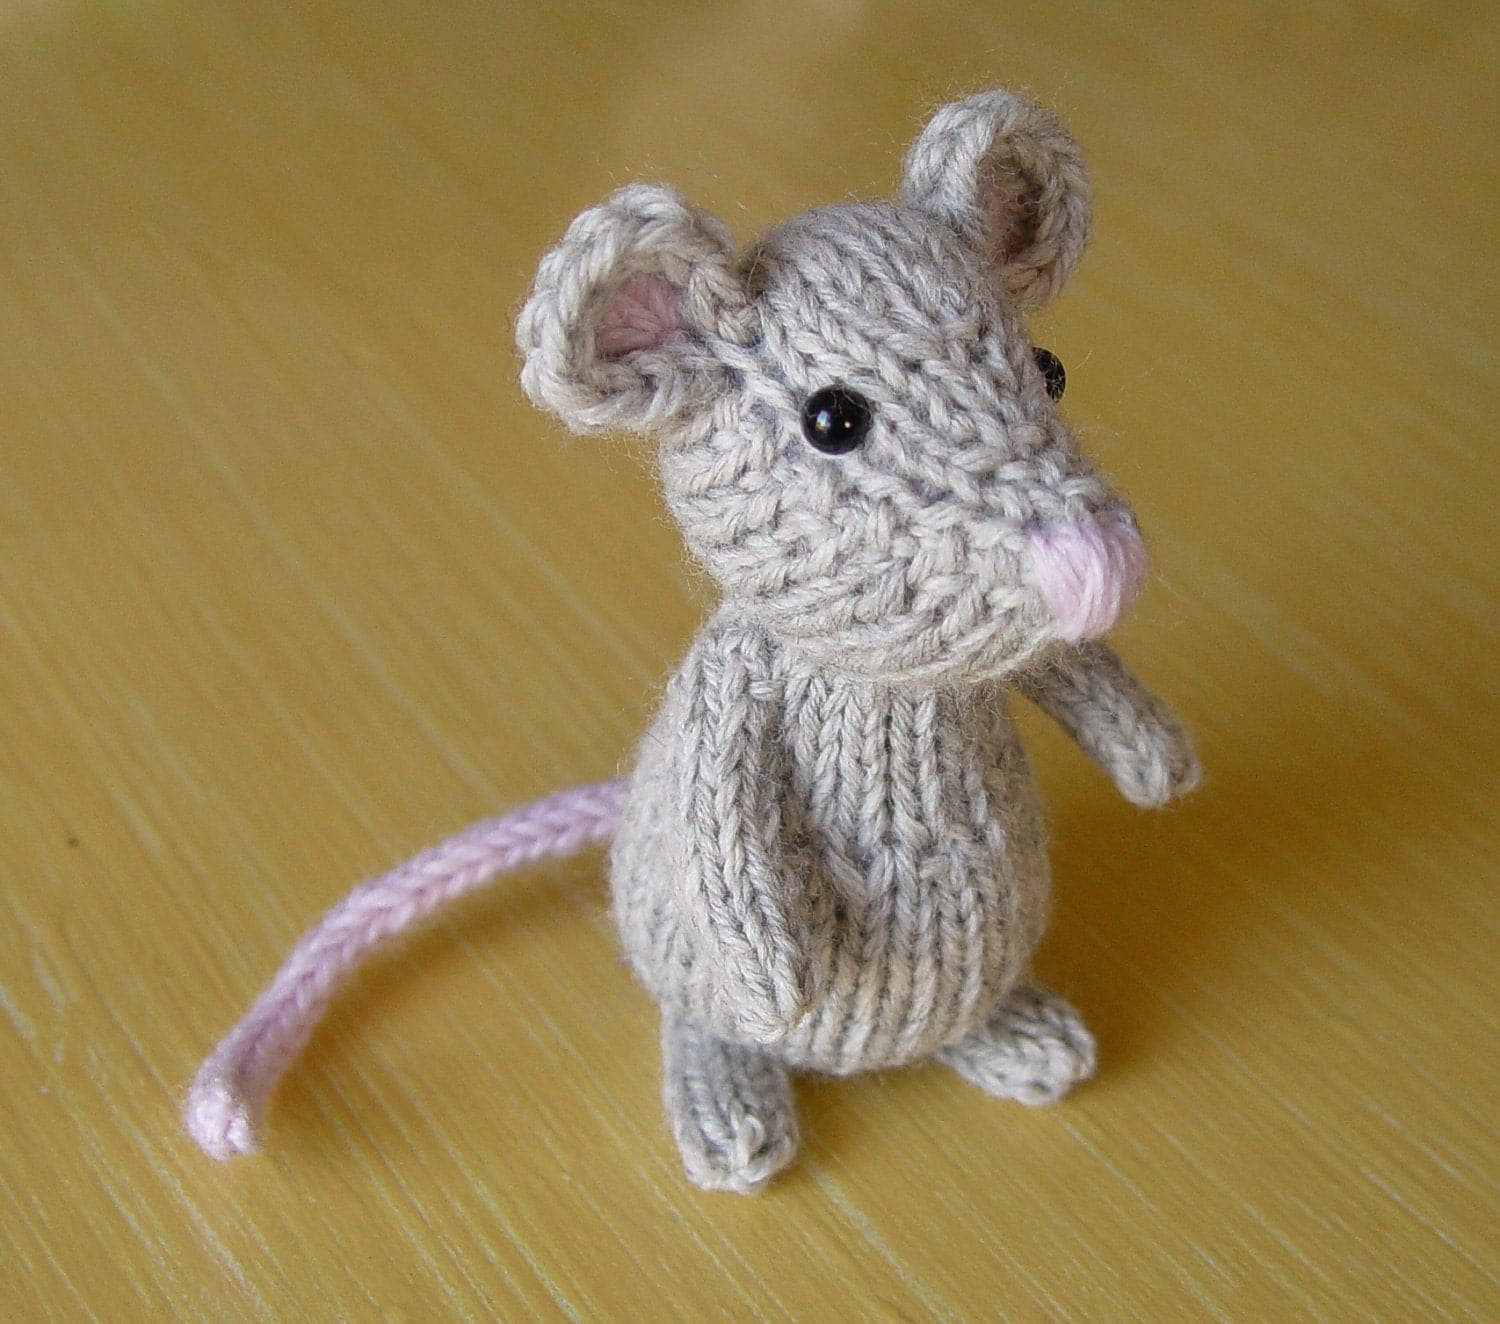 Knitting Pattern Toy Mice : Little knitted mouse in gray wool by Yarnigans on Etsy